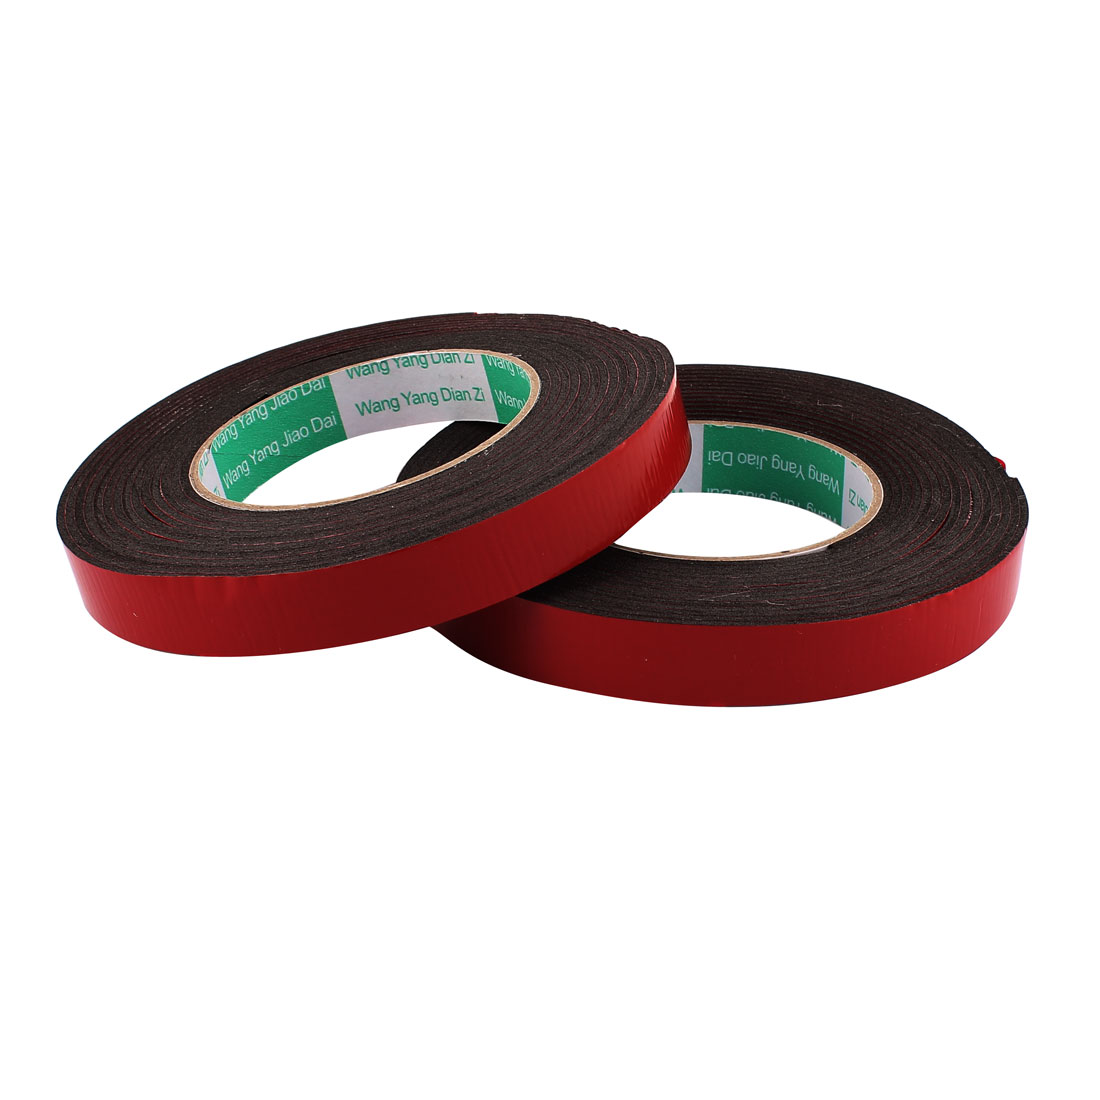 2Pcs 1.8CM Width 5M Length 2MM Thick Dual Sided Sealing Shockproof Sponge Tape